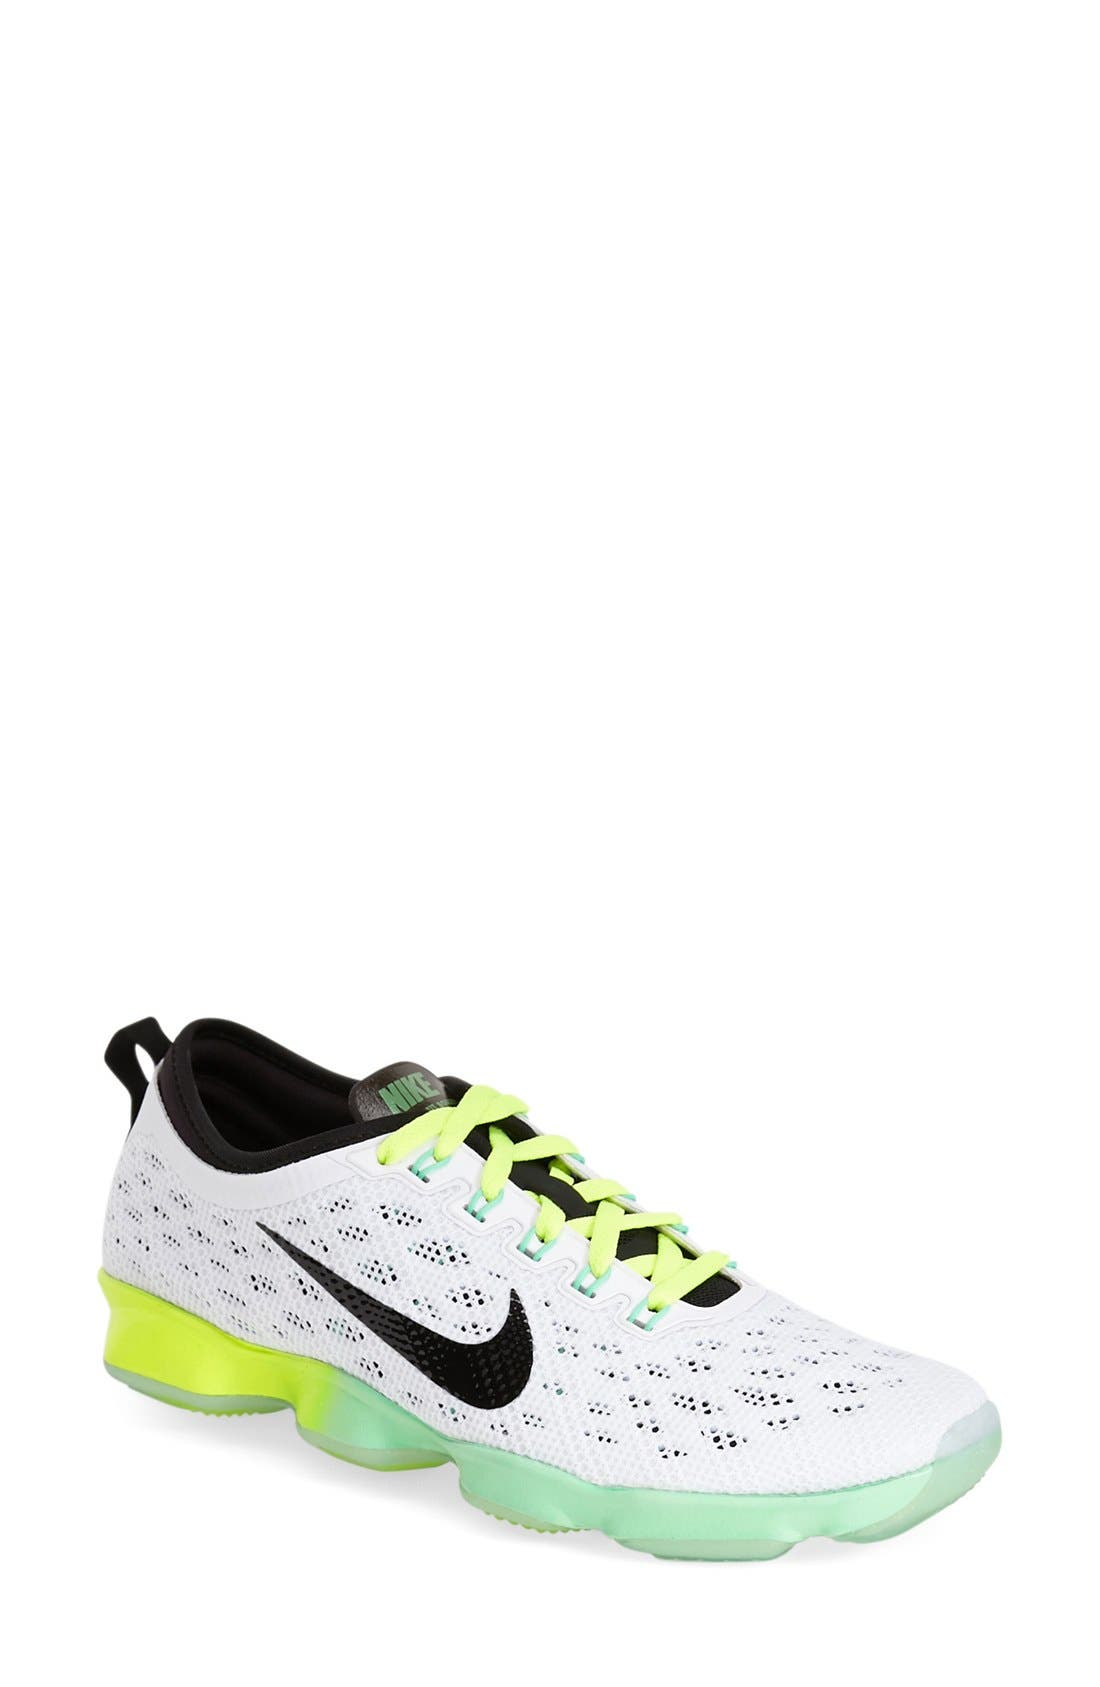 Main Image - Nike 'Zoom Fit Agility' Training Shoe (Women)